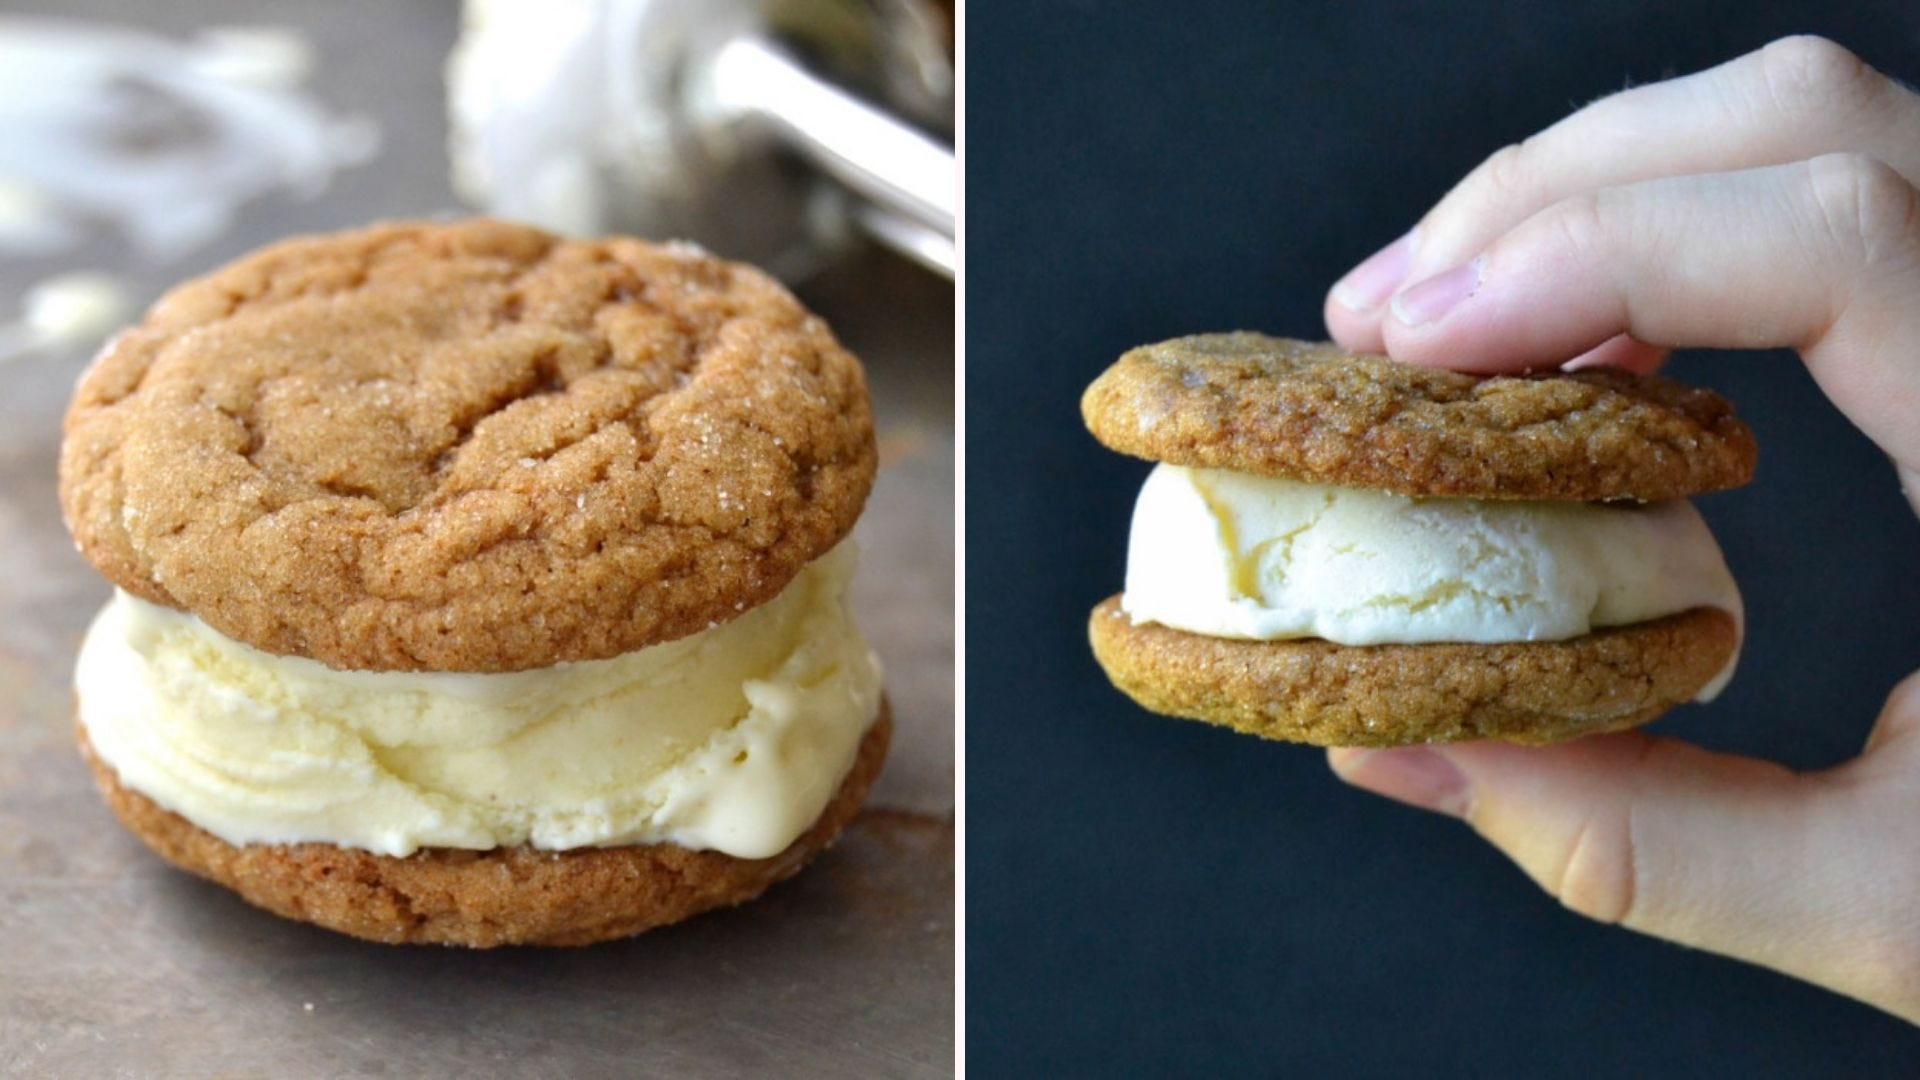 Two images of an ice cream sandwich made from ginger cookies and ice cream